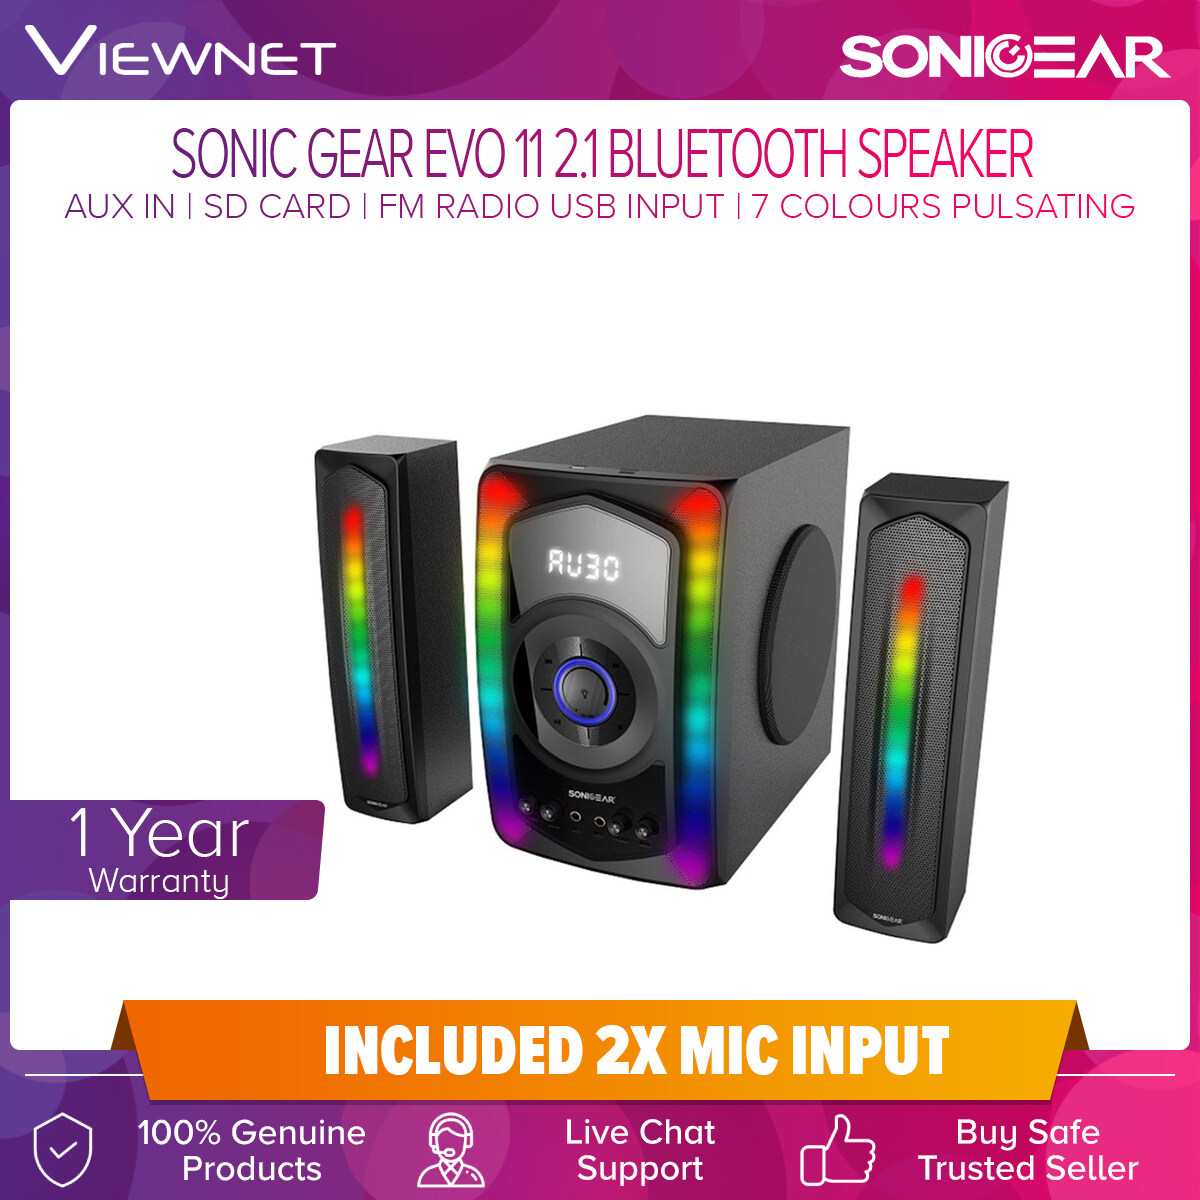 Sonic Gear Evo 11 Speaker 2.1 Channel System Satellite Subwoofer 7 Colour Pulsating LED 80W Power with Bluetooth Mic Input USB SD Card Aux In Support